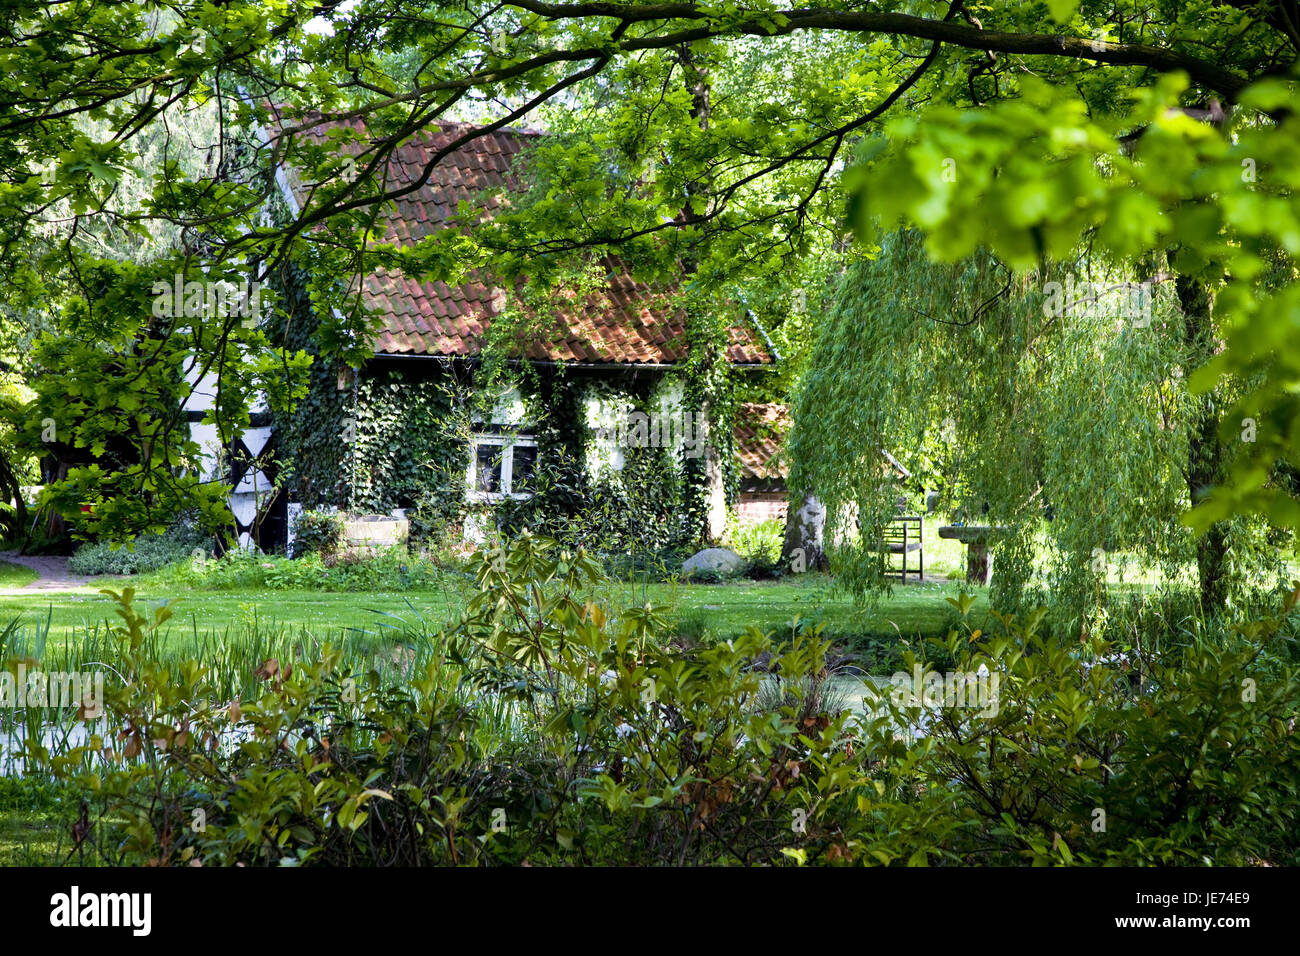 Germany, North Rhine-Westphalia, circle of Minden-Lübbecke, residential house, become overgrown, village, Todtenhausen, - Stock Image